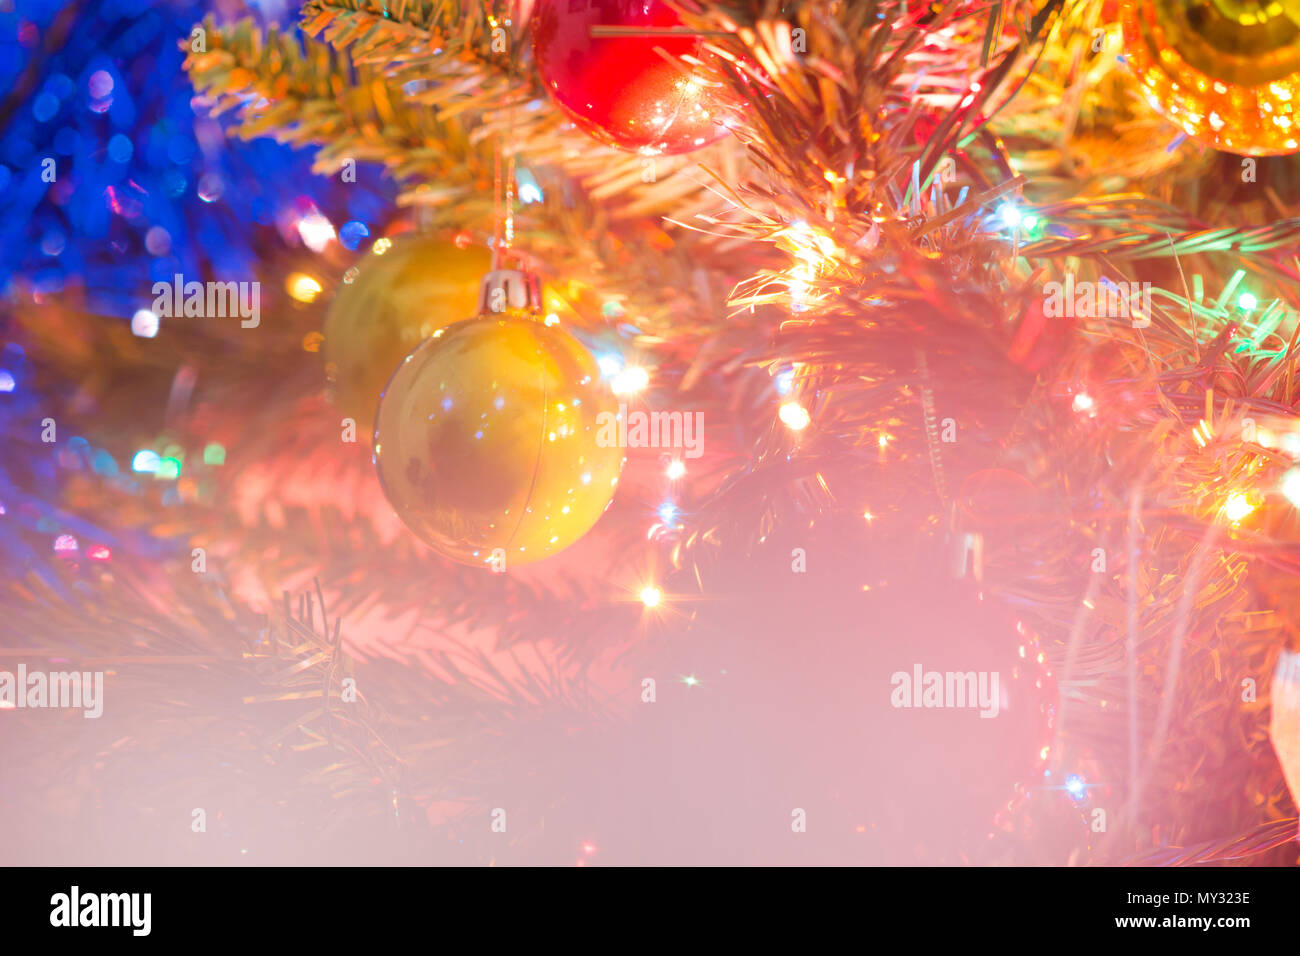 Blurred image. of Christmas-tree decorations, Retro filter effect. Stock Photo